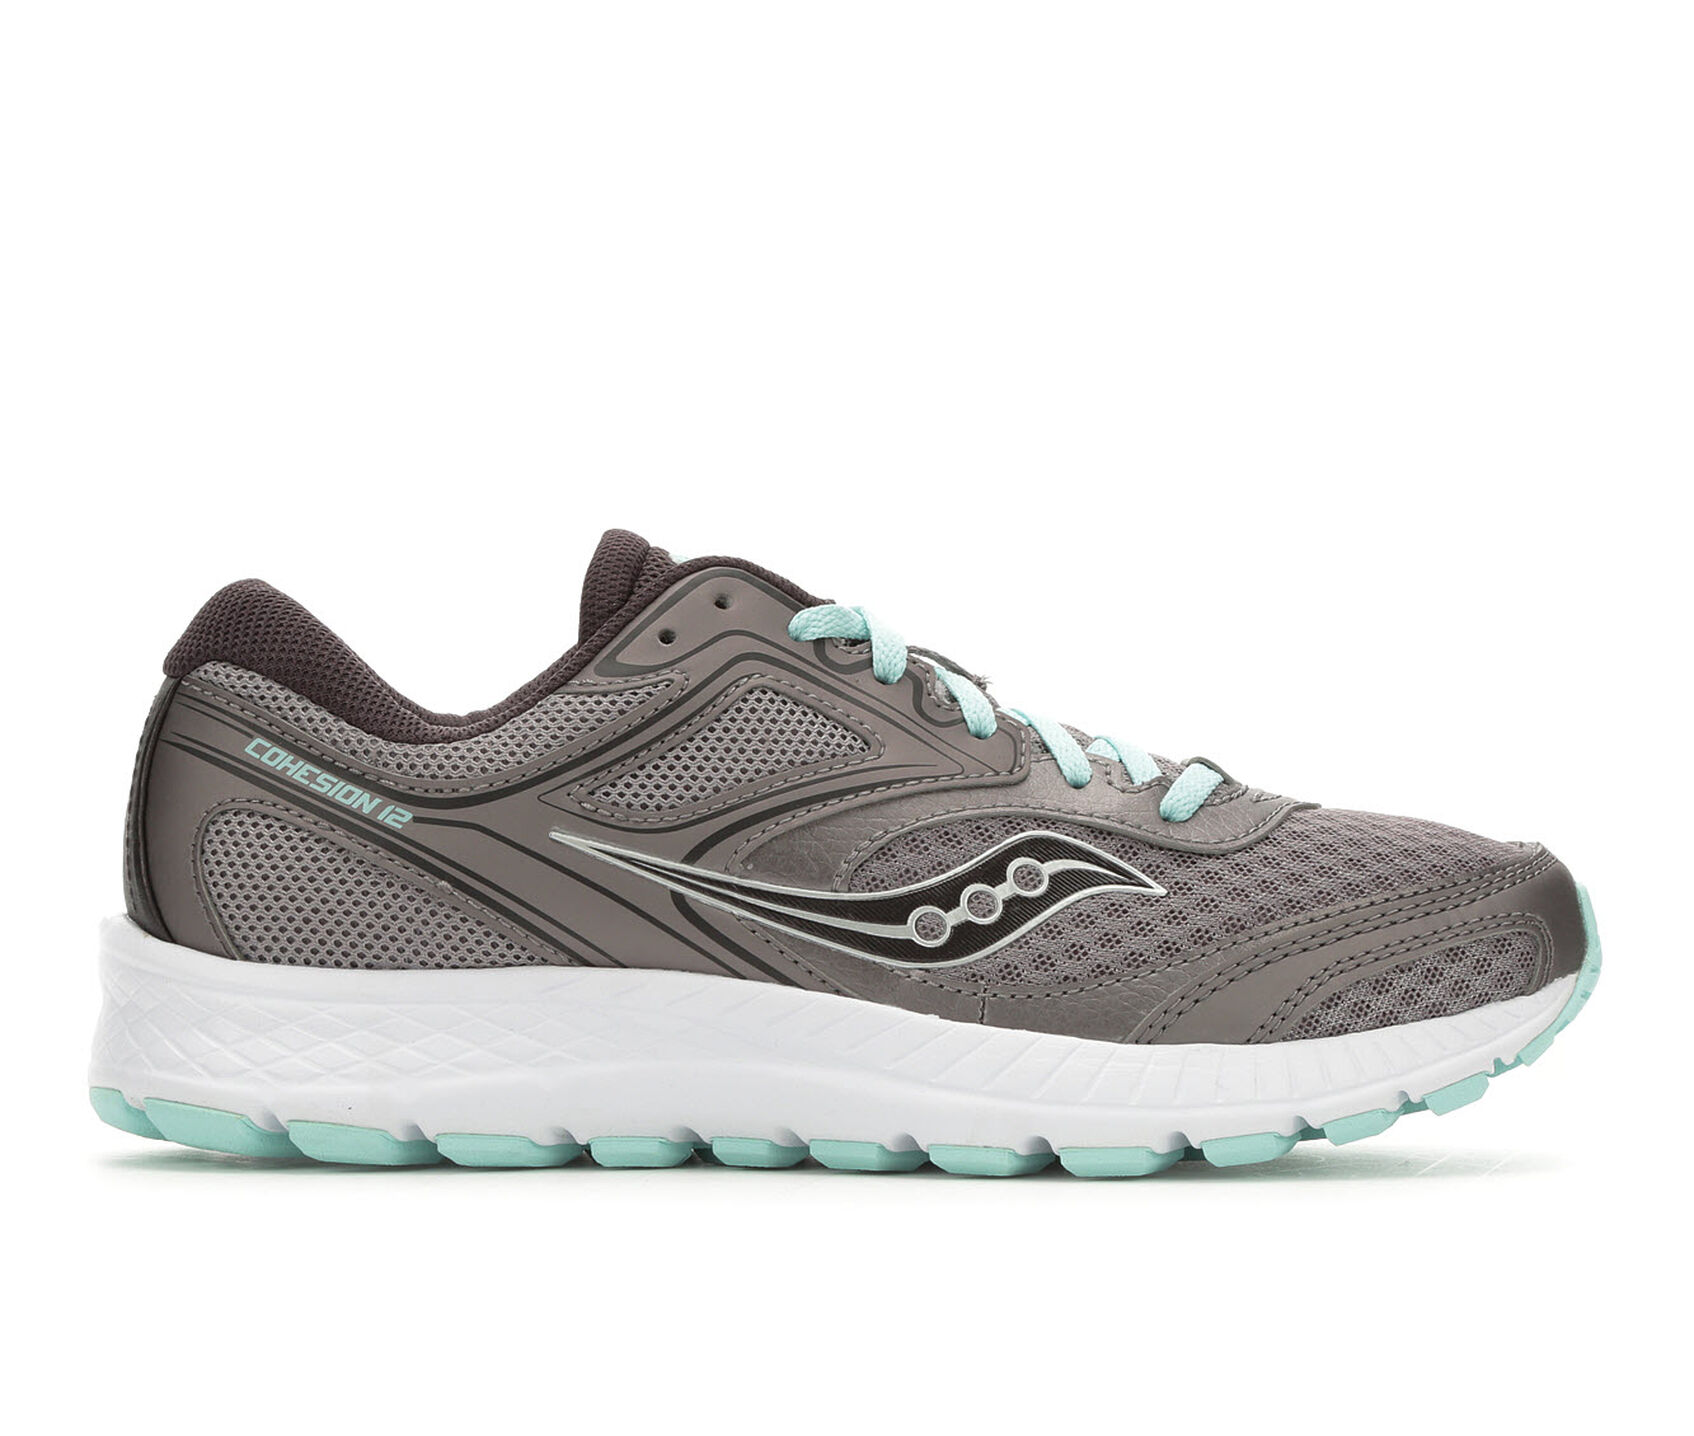 f2a5e59001c ... Saucony Cohesion 12 Running Shoes. Previous